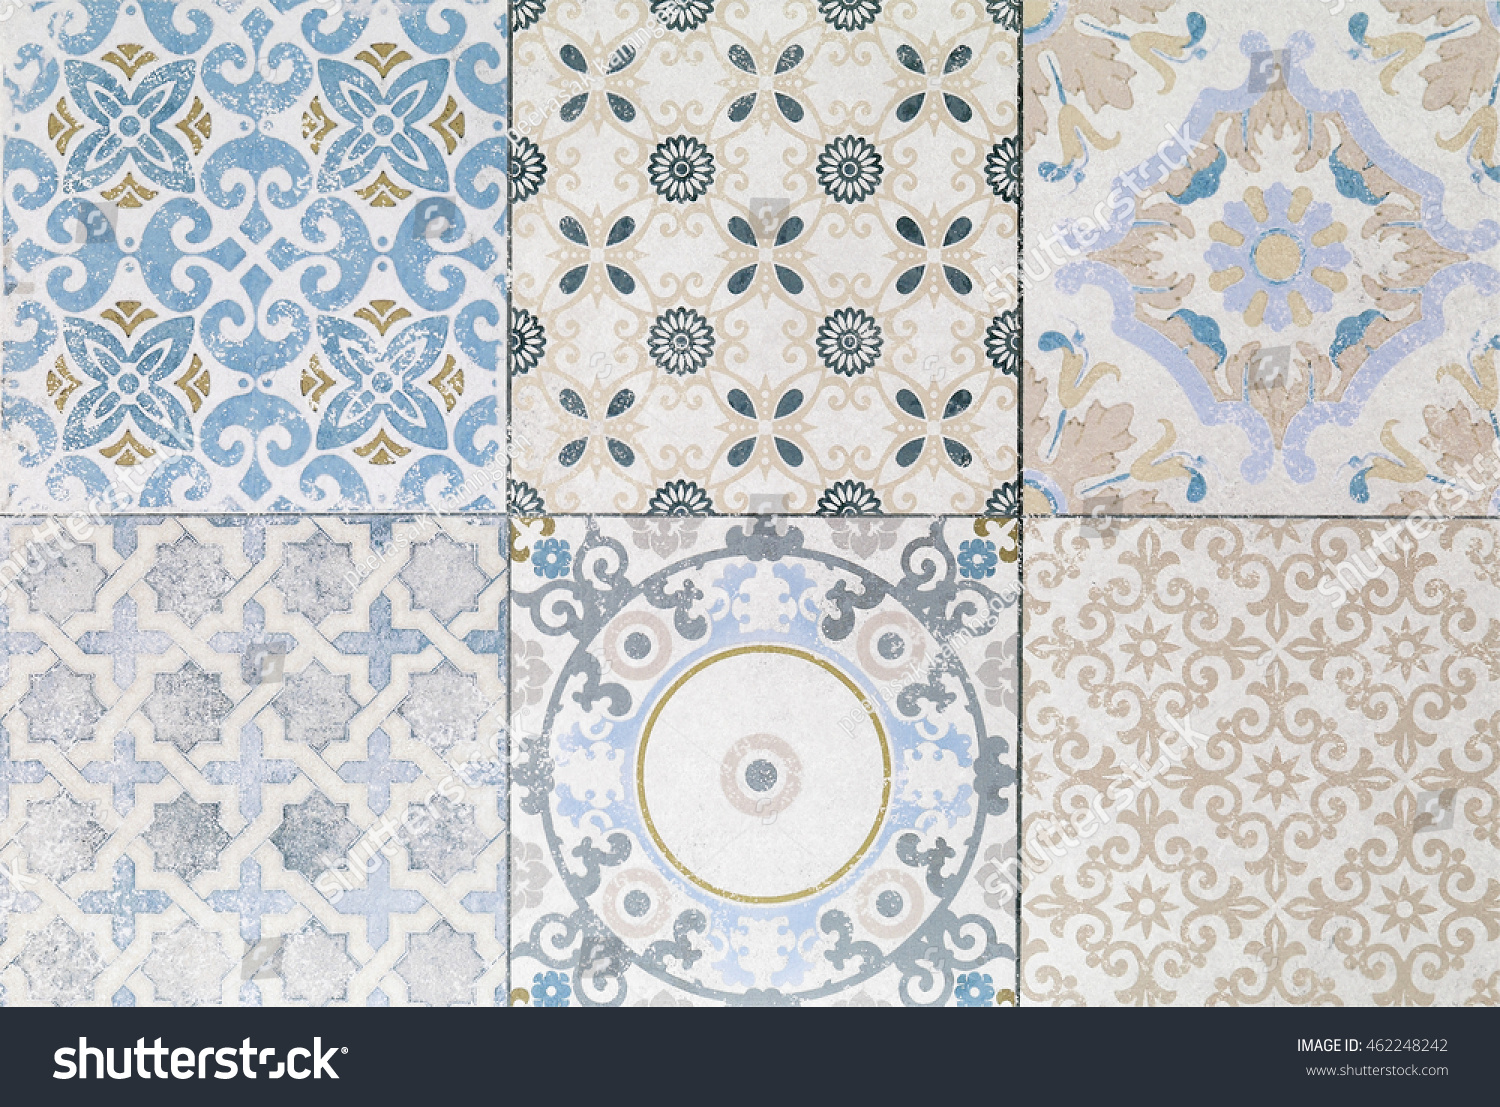 Old Ceramic Tile Wall Patterns Park Stock Photo (Edit Now) 462248242 ...